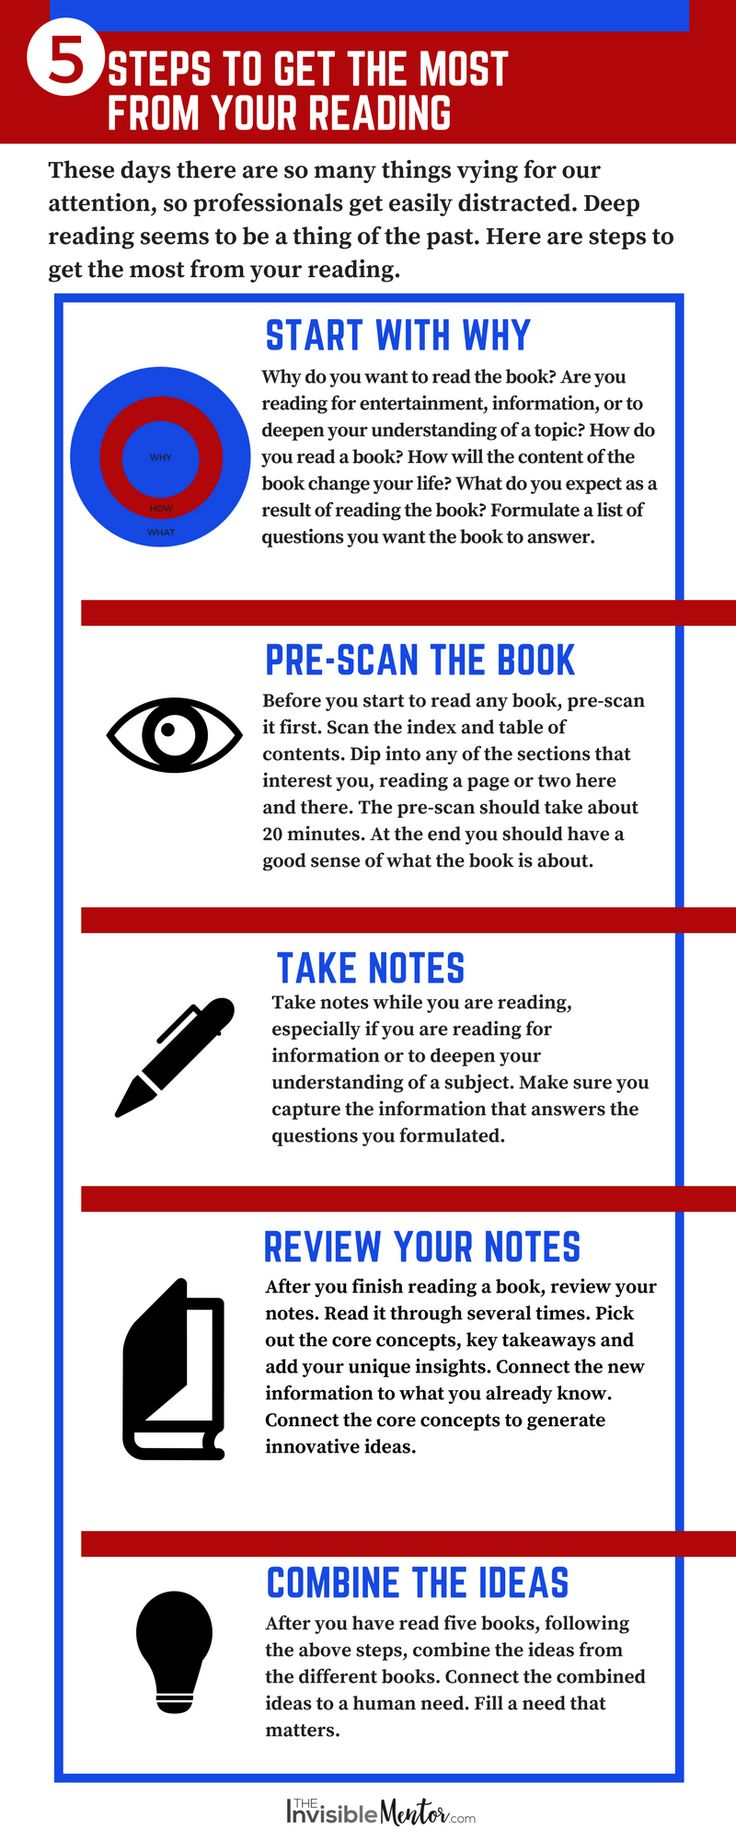 Are you getting the most from your reading? 5 Steps to Get the Most Out of Reading Books (infographic) walks you through the process. All the steps are important, but I want professionals to get a return on their reading investment, so they will read more books. The profit is in the ideas you discover on the pages. Click through to start profiting from the books you read. The Mark Cubans of this world do this, so why not you?